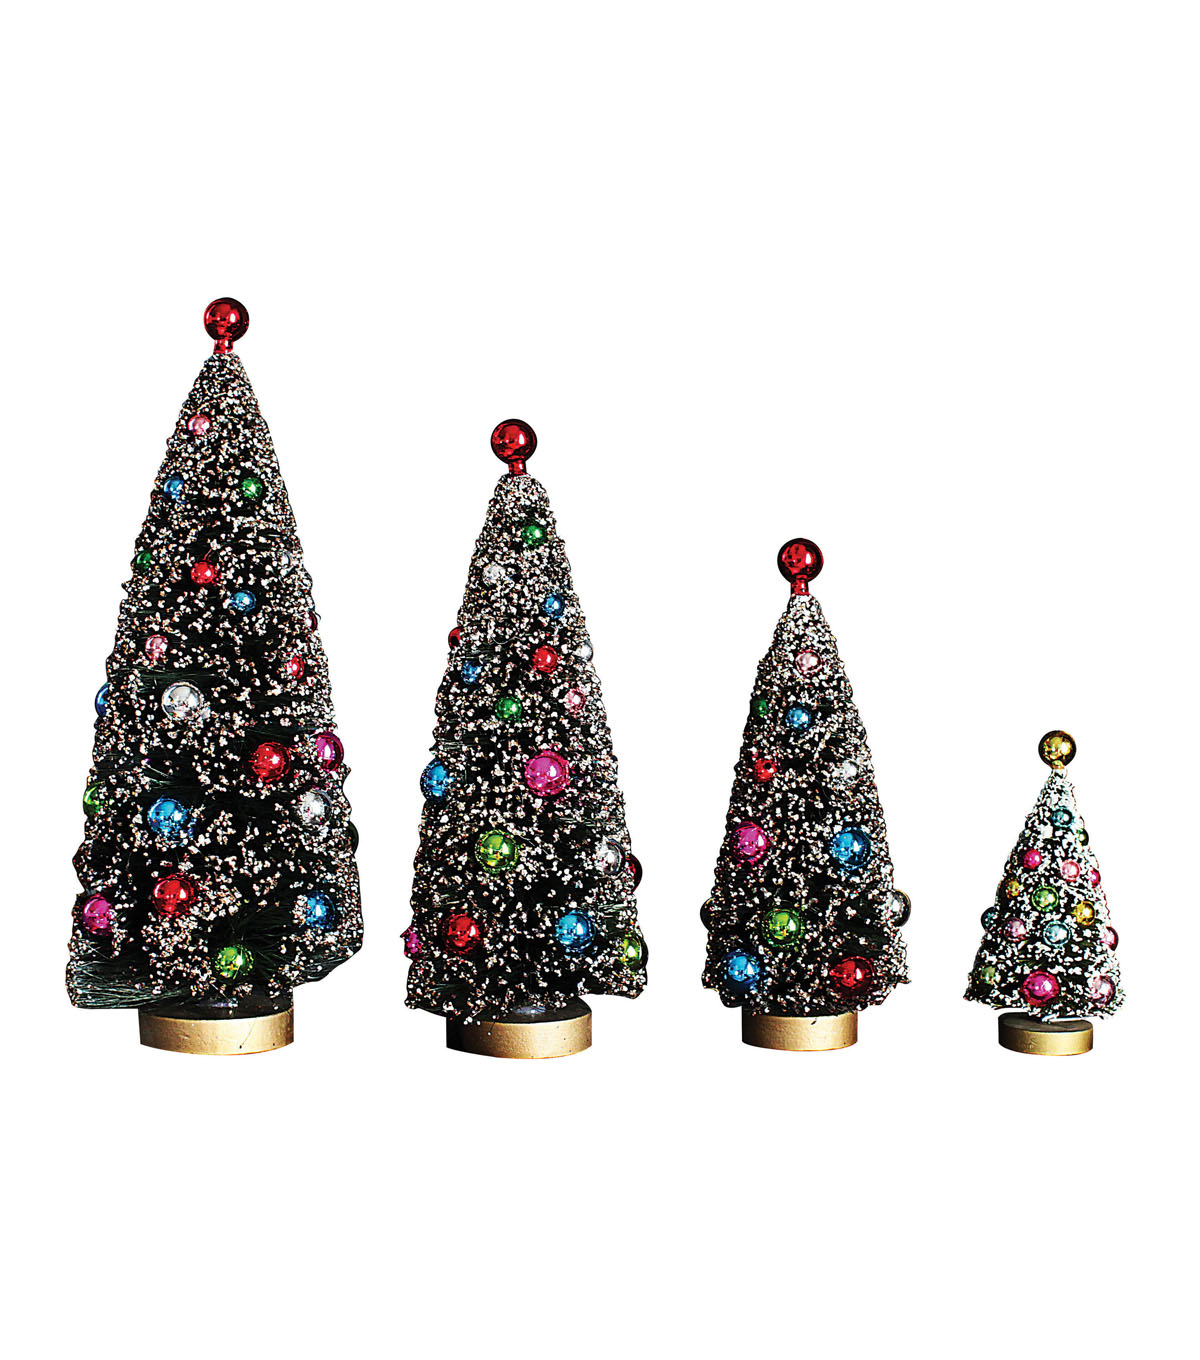 3R Studios Christmas 4 pk Bottle Brush Trees with Ornaments-Multi Color